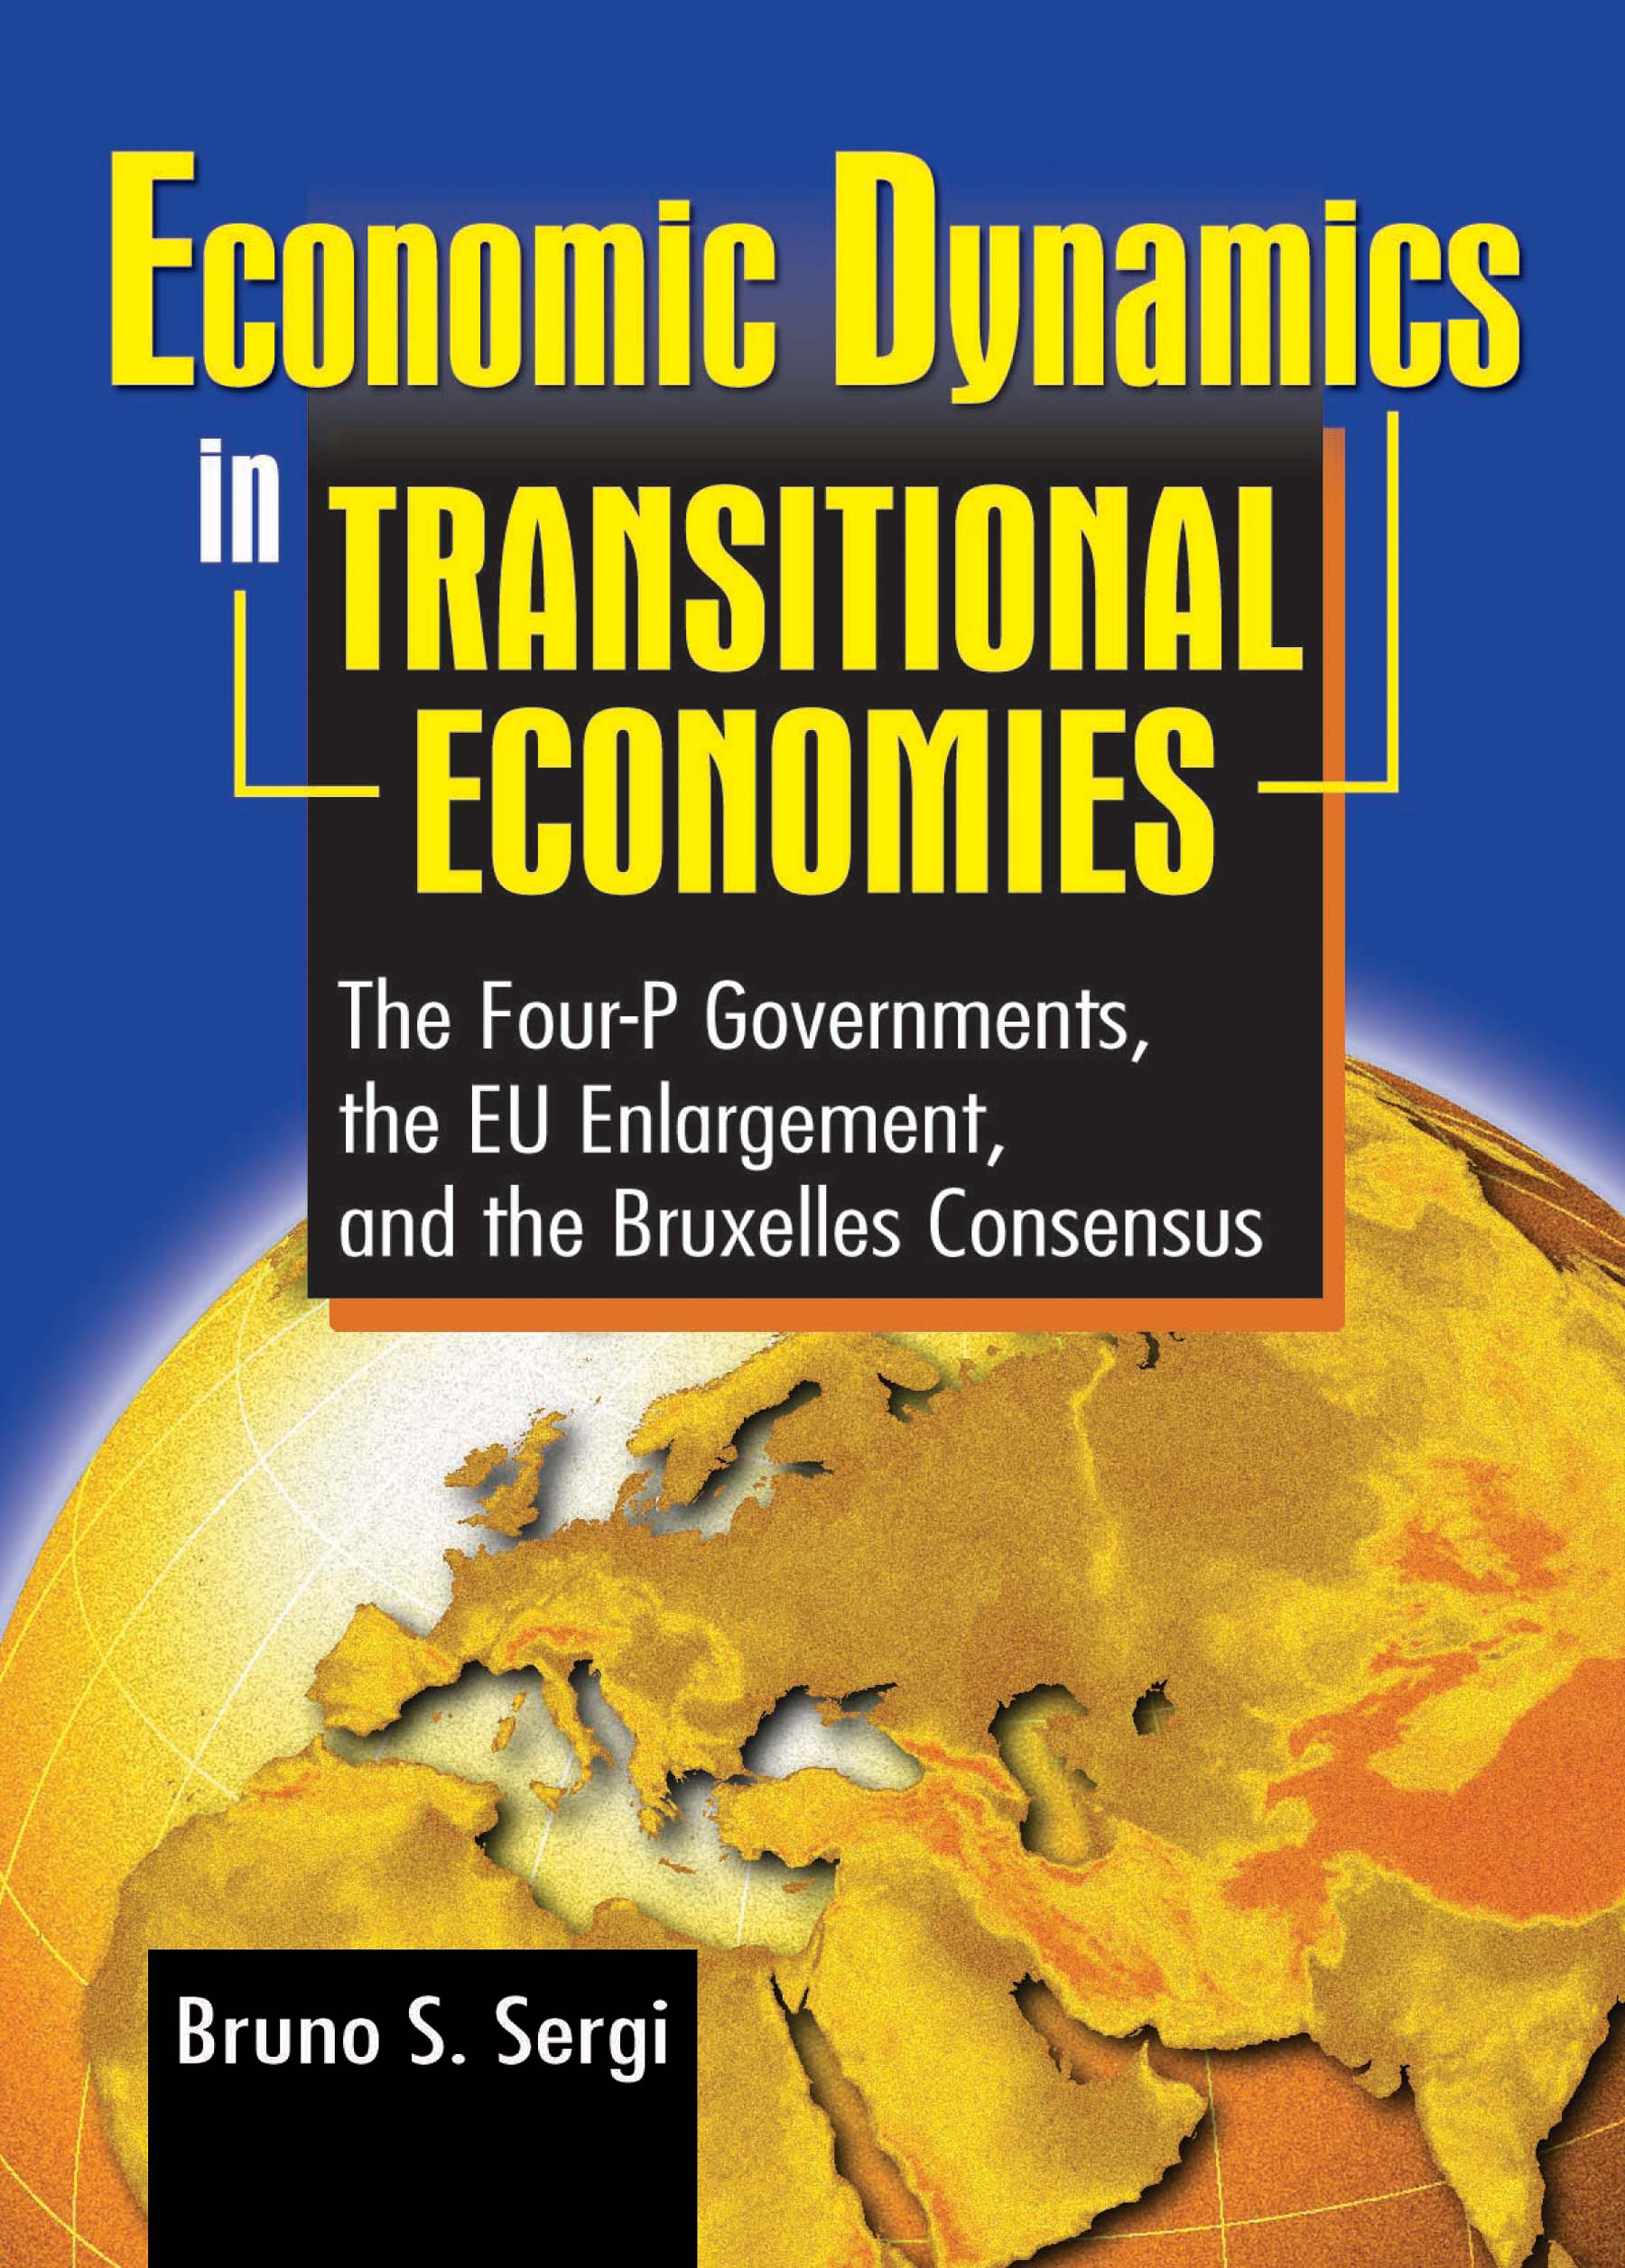 The Political Economy of Keynes, Schumpeter, and the Supply-Siders